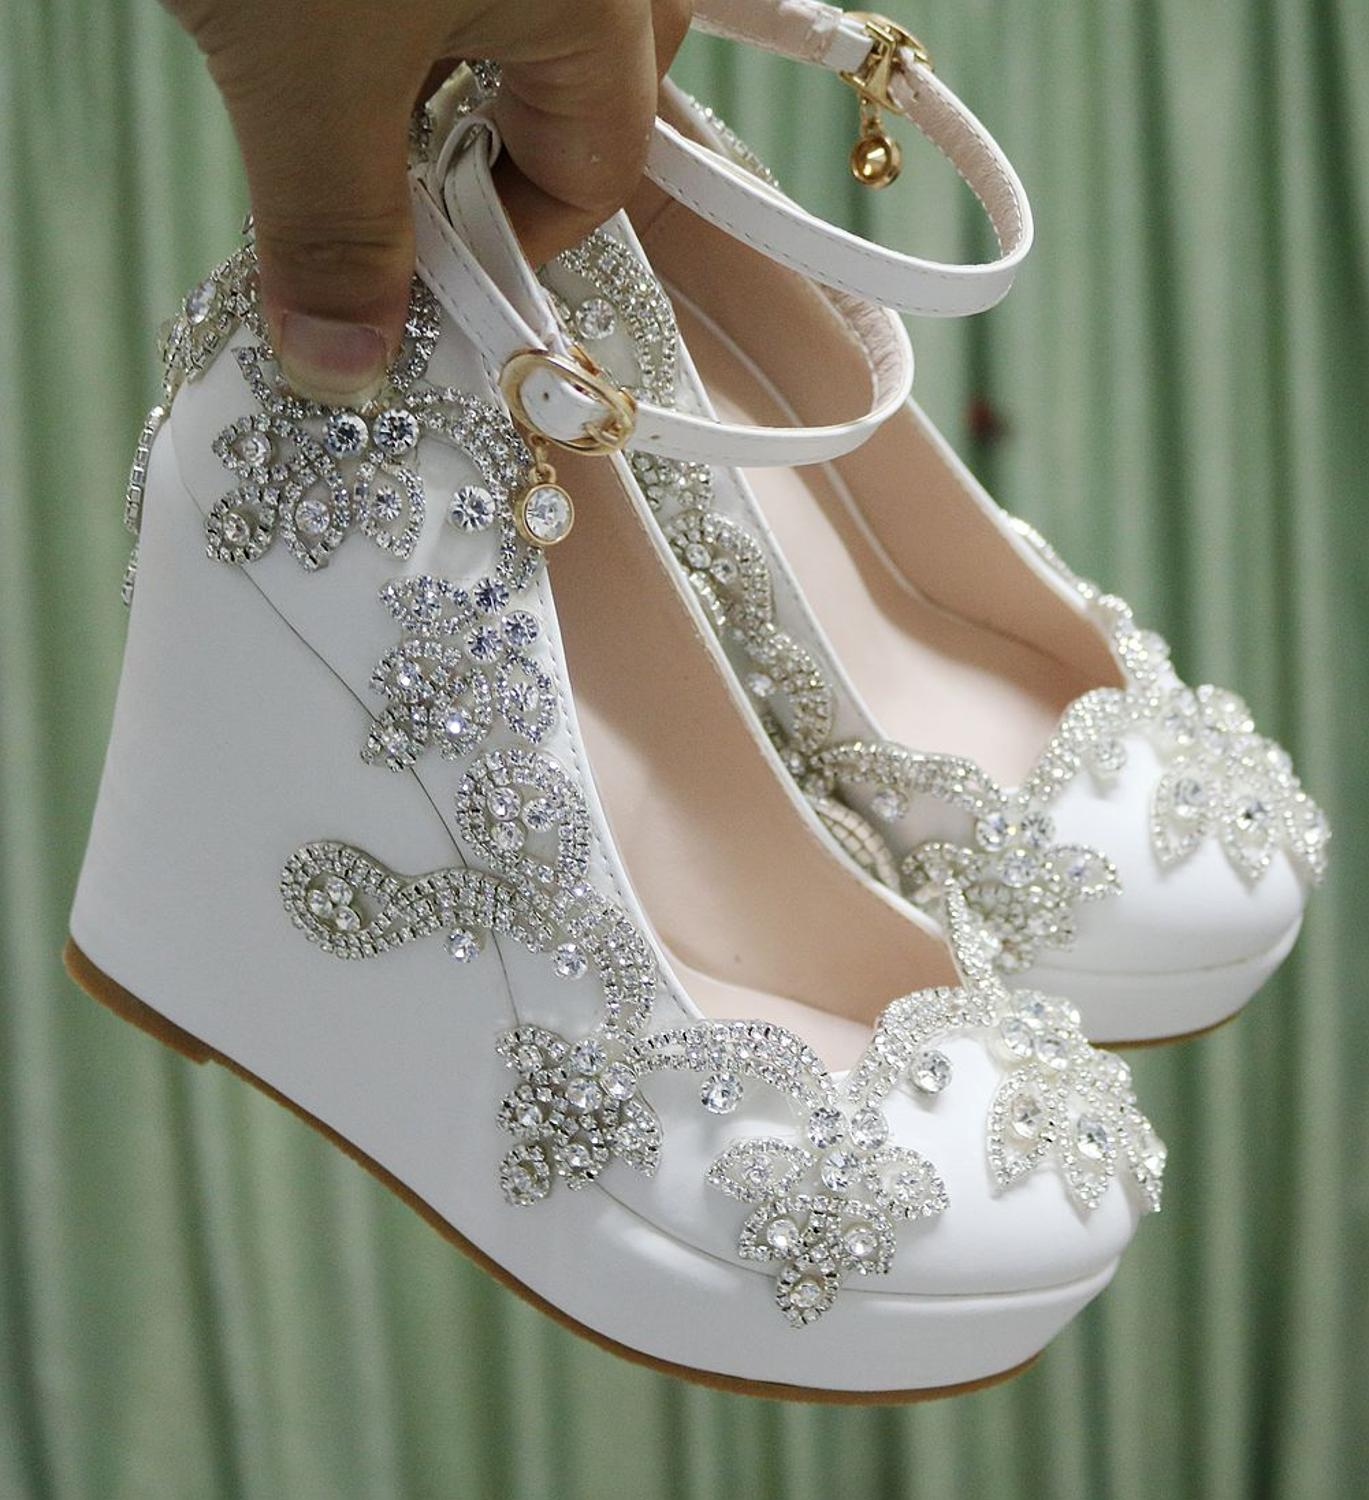 Crystal Queen Rhinestone Pumps Wedding Shoes Bride Clear Heels Crystal Pumps Christmas Day Evening Party 10cm High Heels